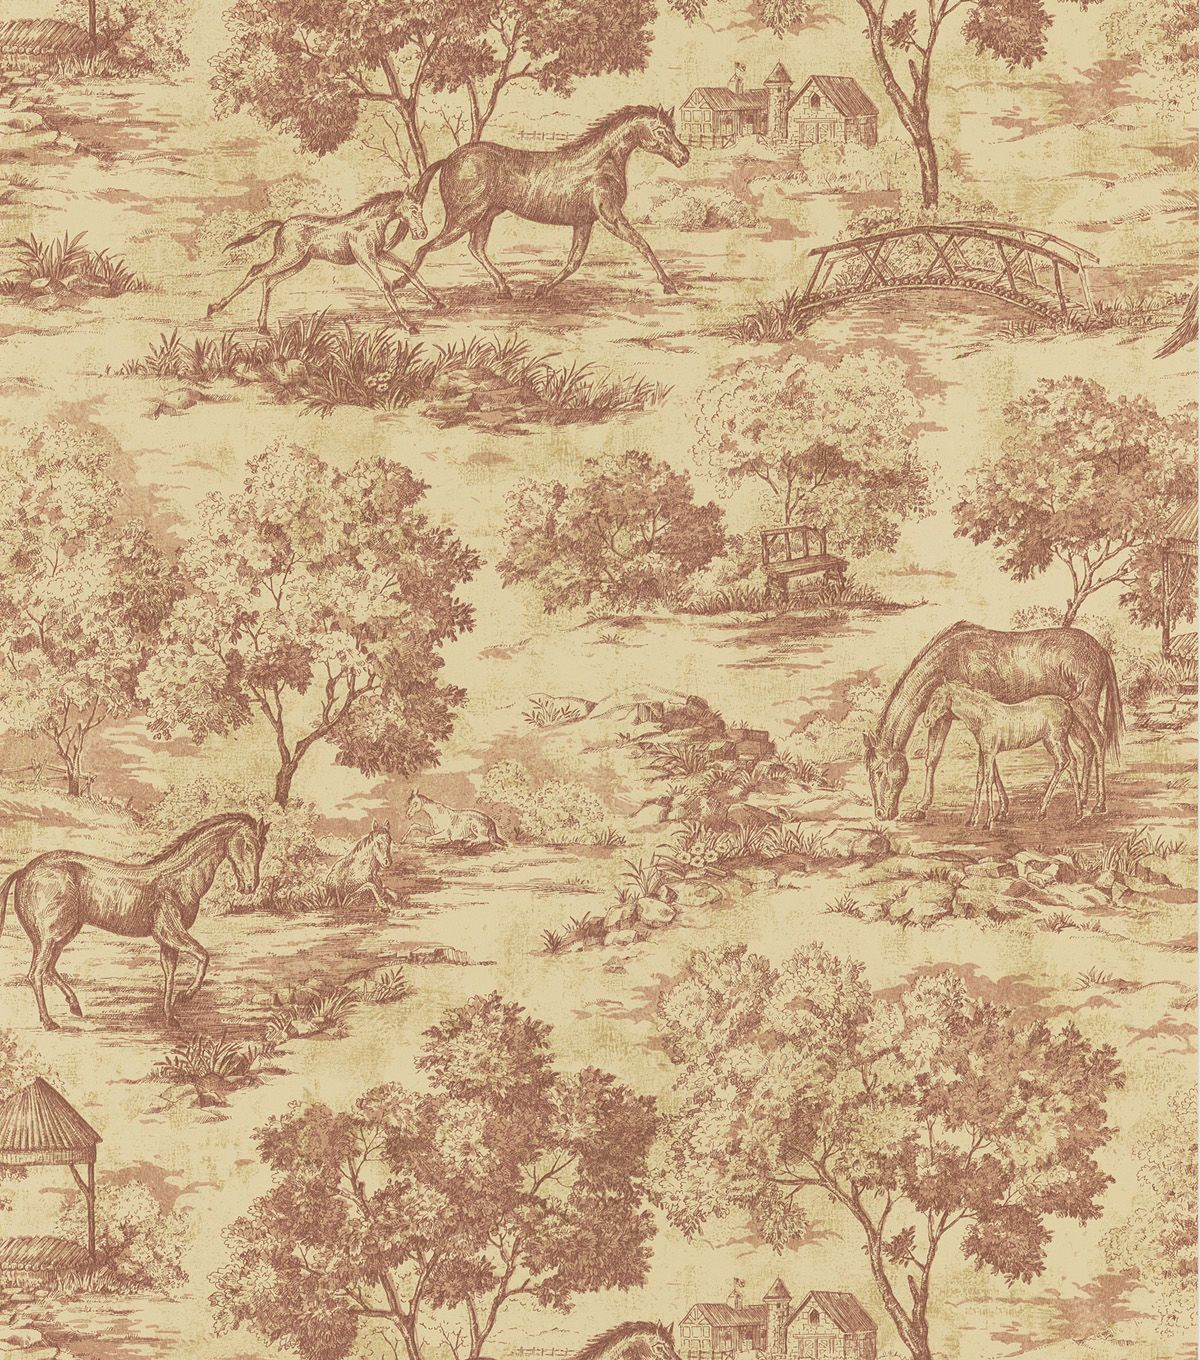 Popular Wallpaper Horse Pattern - 43bcde1d25c4ab7e8eb7a0fa0dc47ff4  Picture_872748.jpg